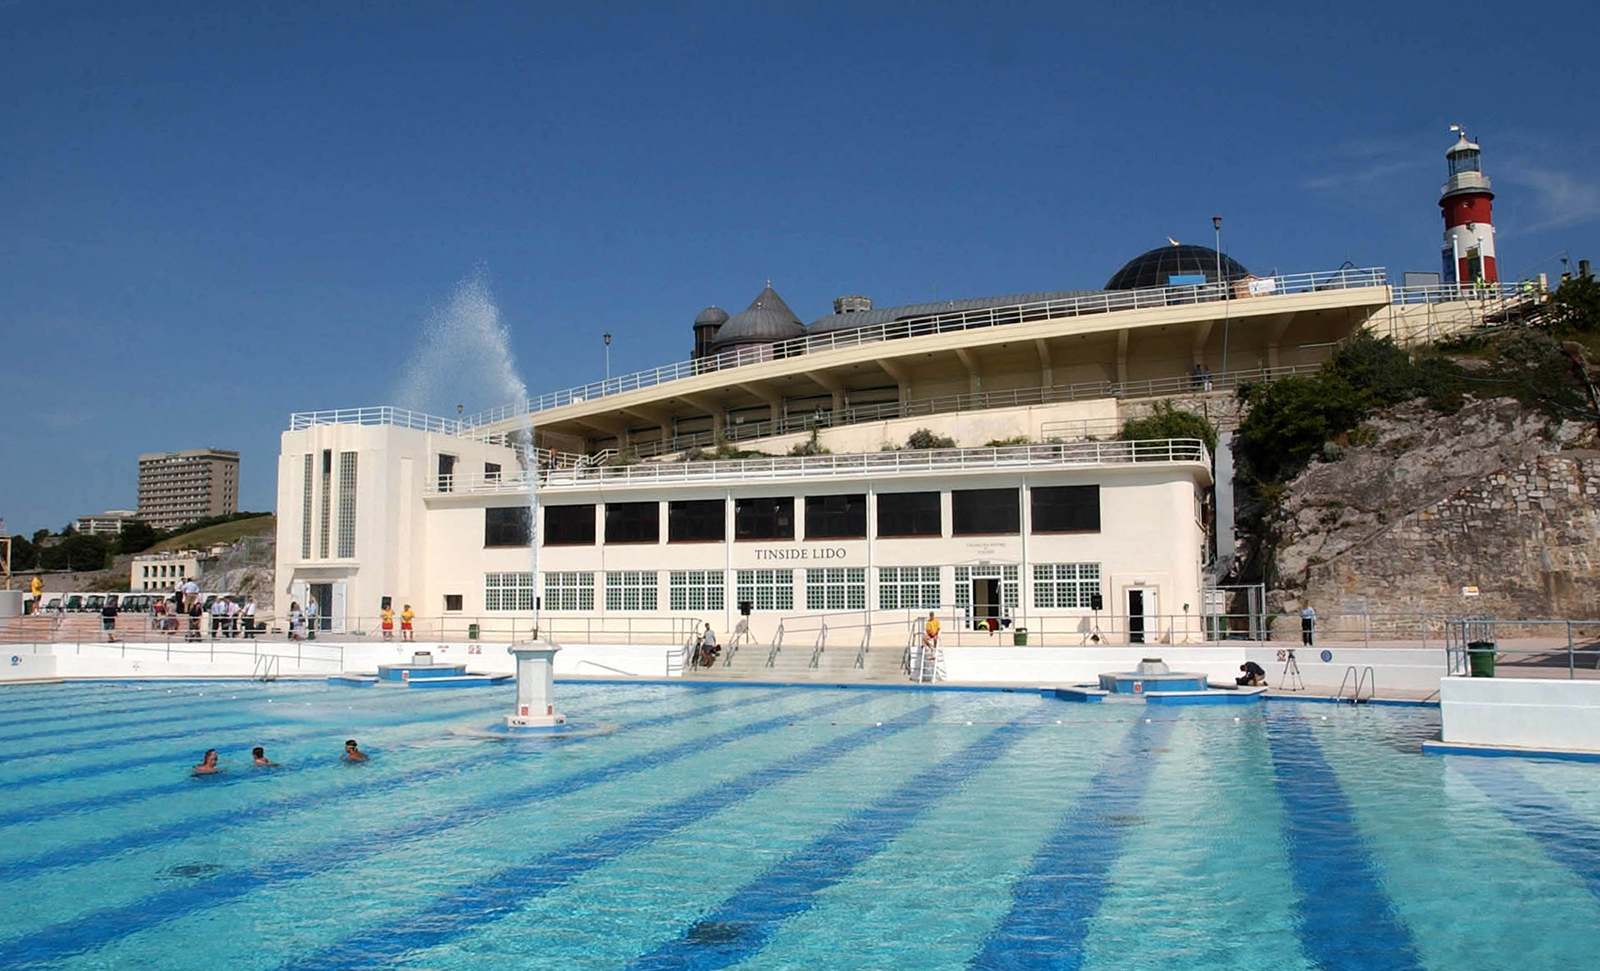 British swimming pools - Tineside Lido